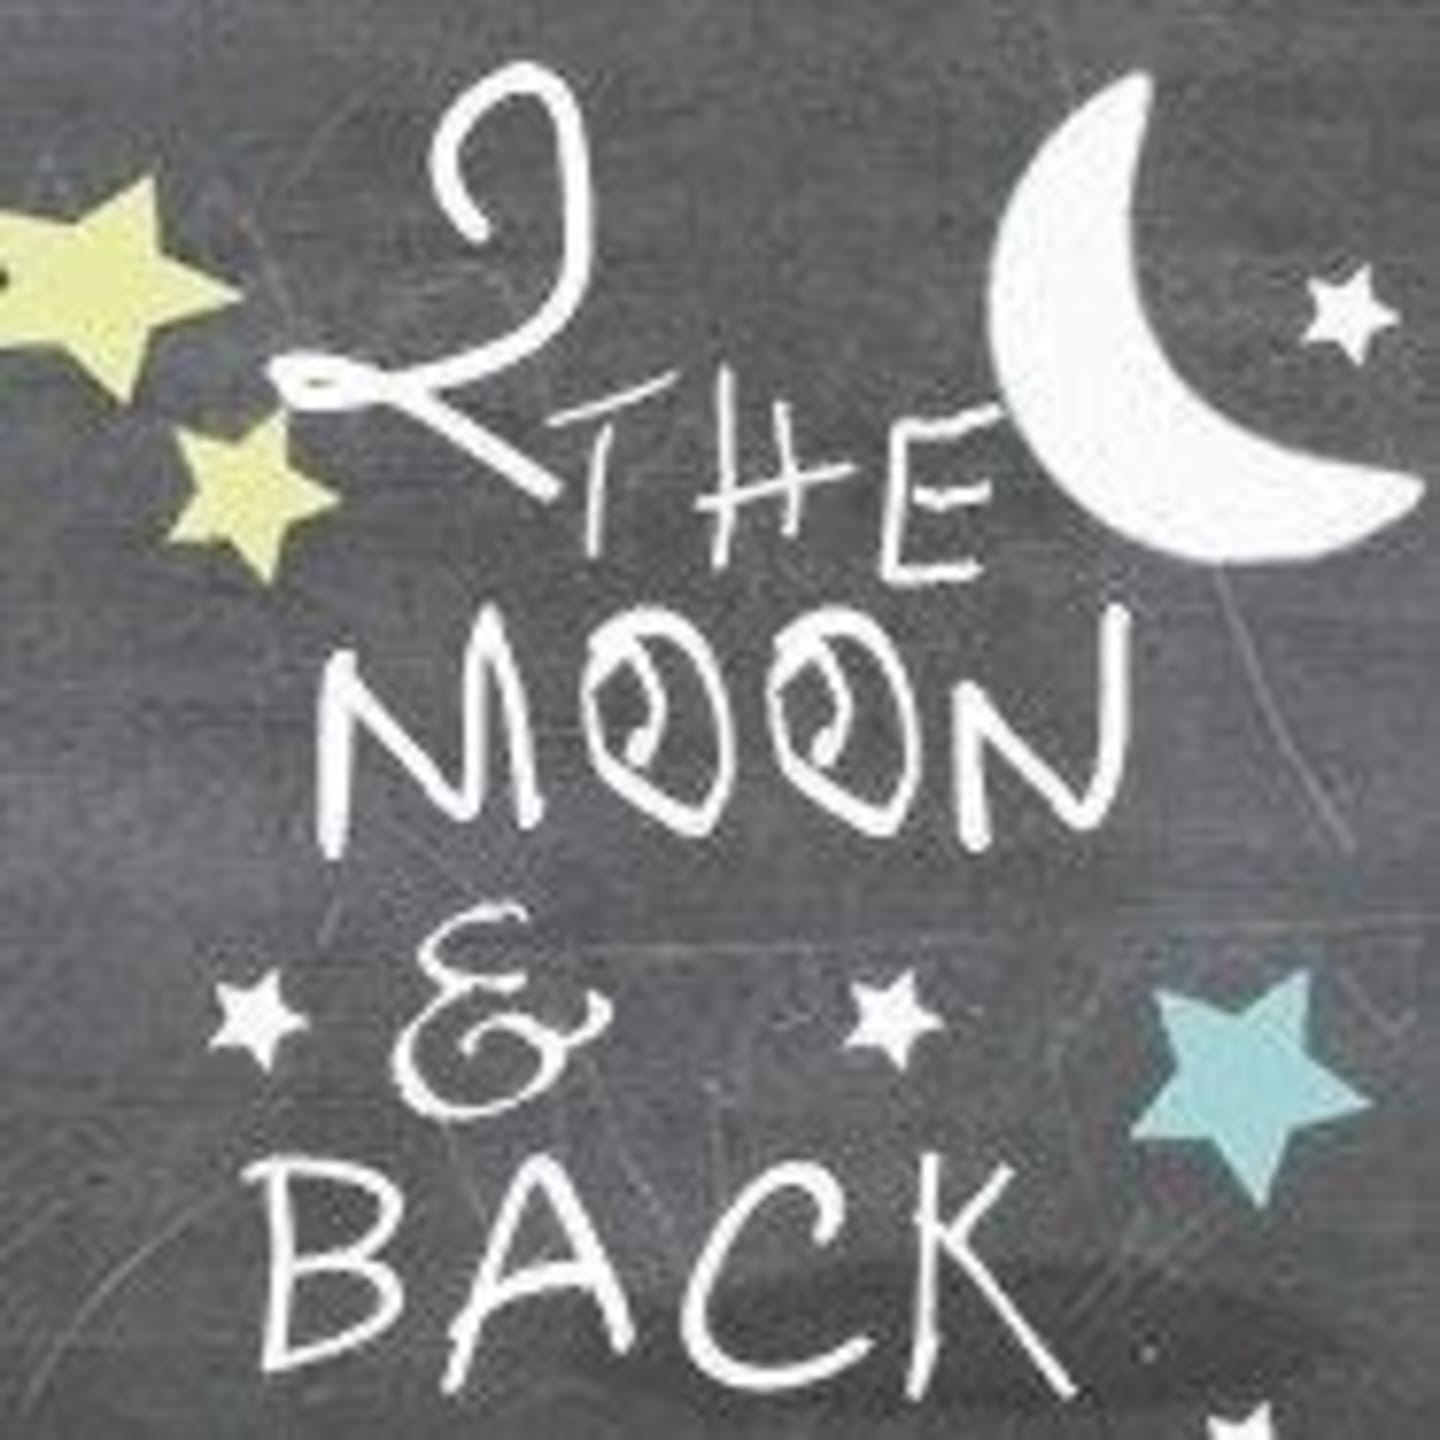 2 the moon & back poster